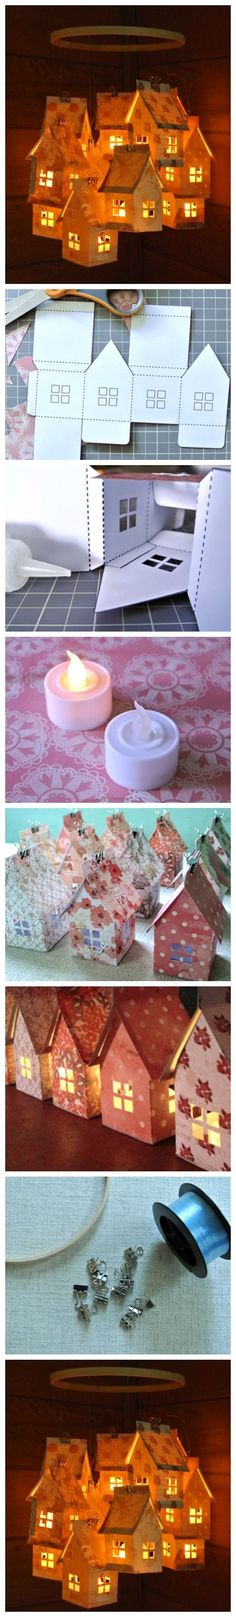 Christmas DIY: Paper House Luminari Paper House Luminaries and Mobile Noel Christmas, Christmas Crafts, Christmas Decorations, Christmas Ornaments, Diy Paper, Paper Art, Paper Crafts, Diy And Crafts, Crafts For Kids